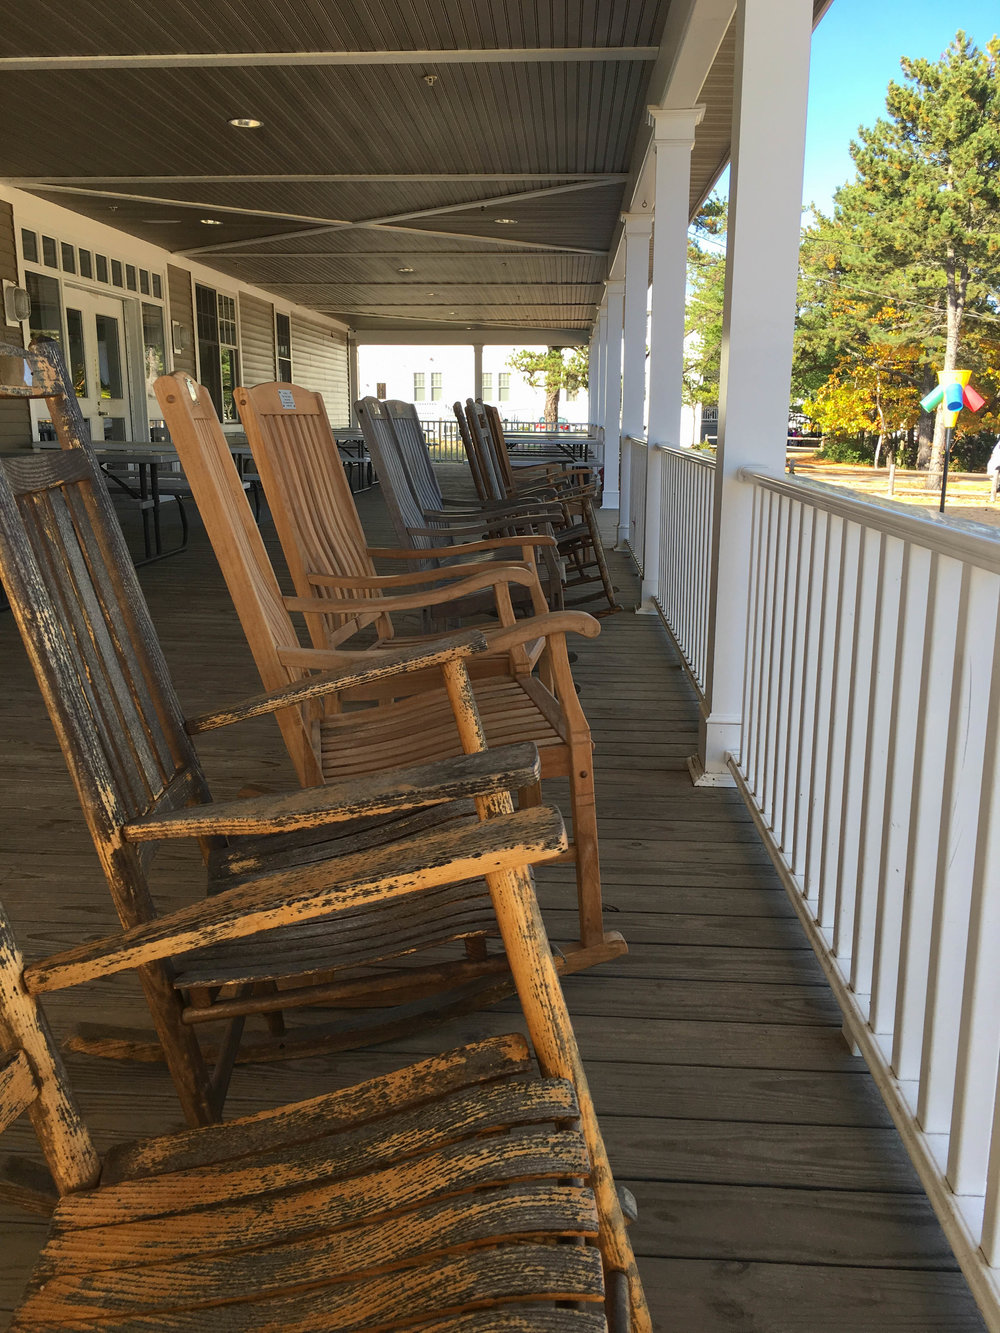 Rocking chairs on porch (1 of 1).jpg